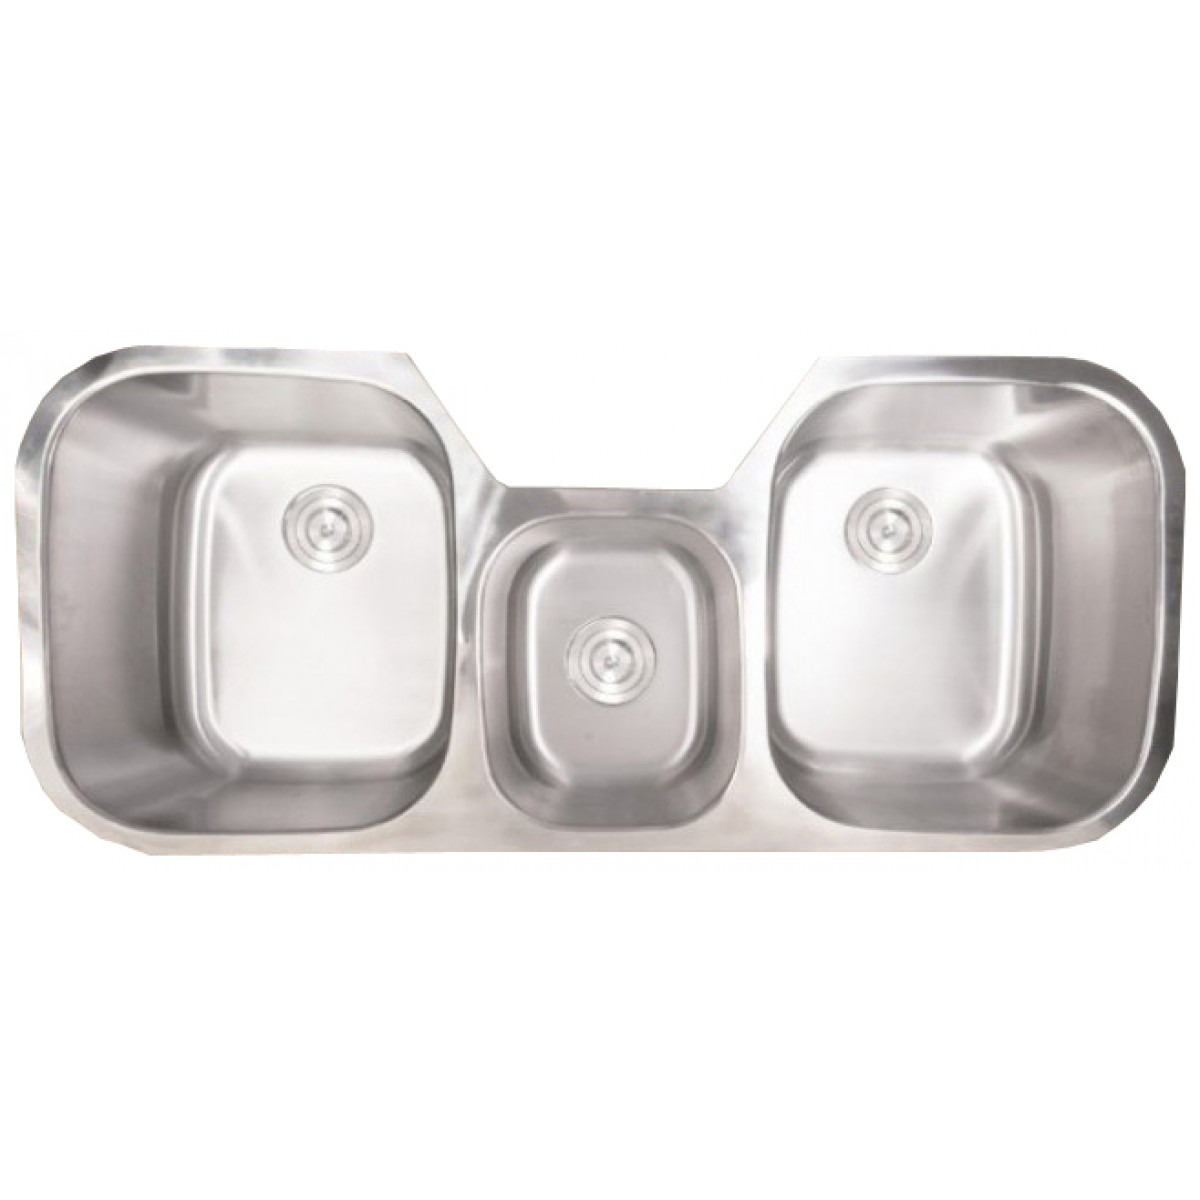 3 Bowl Kitchen Sink : ... Steel Undermount Triple Bowl Kitchen Sink - 16 Gauge FREE ACCESSORIES